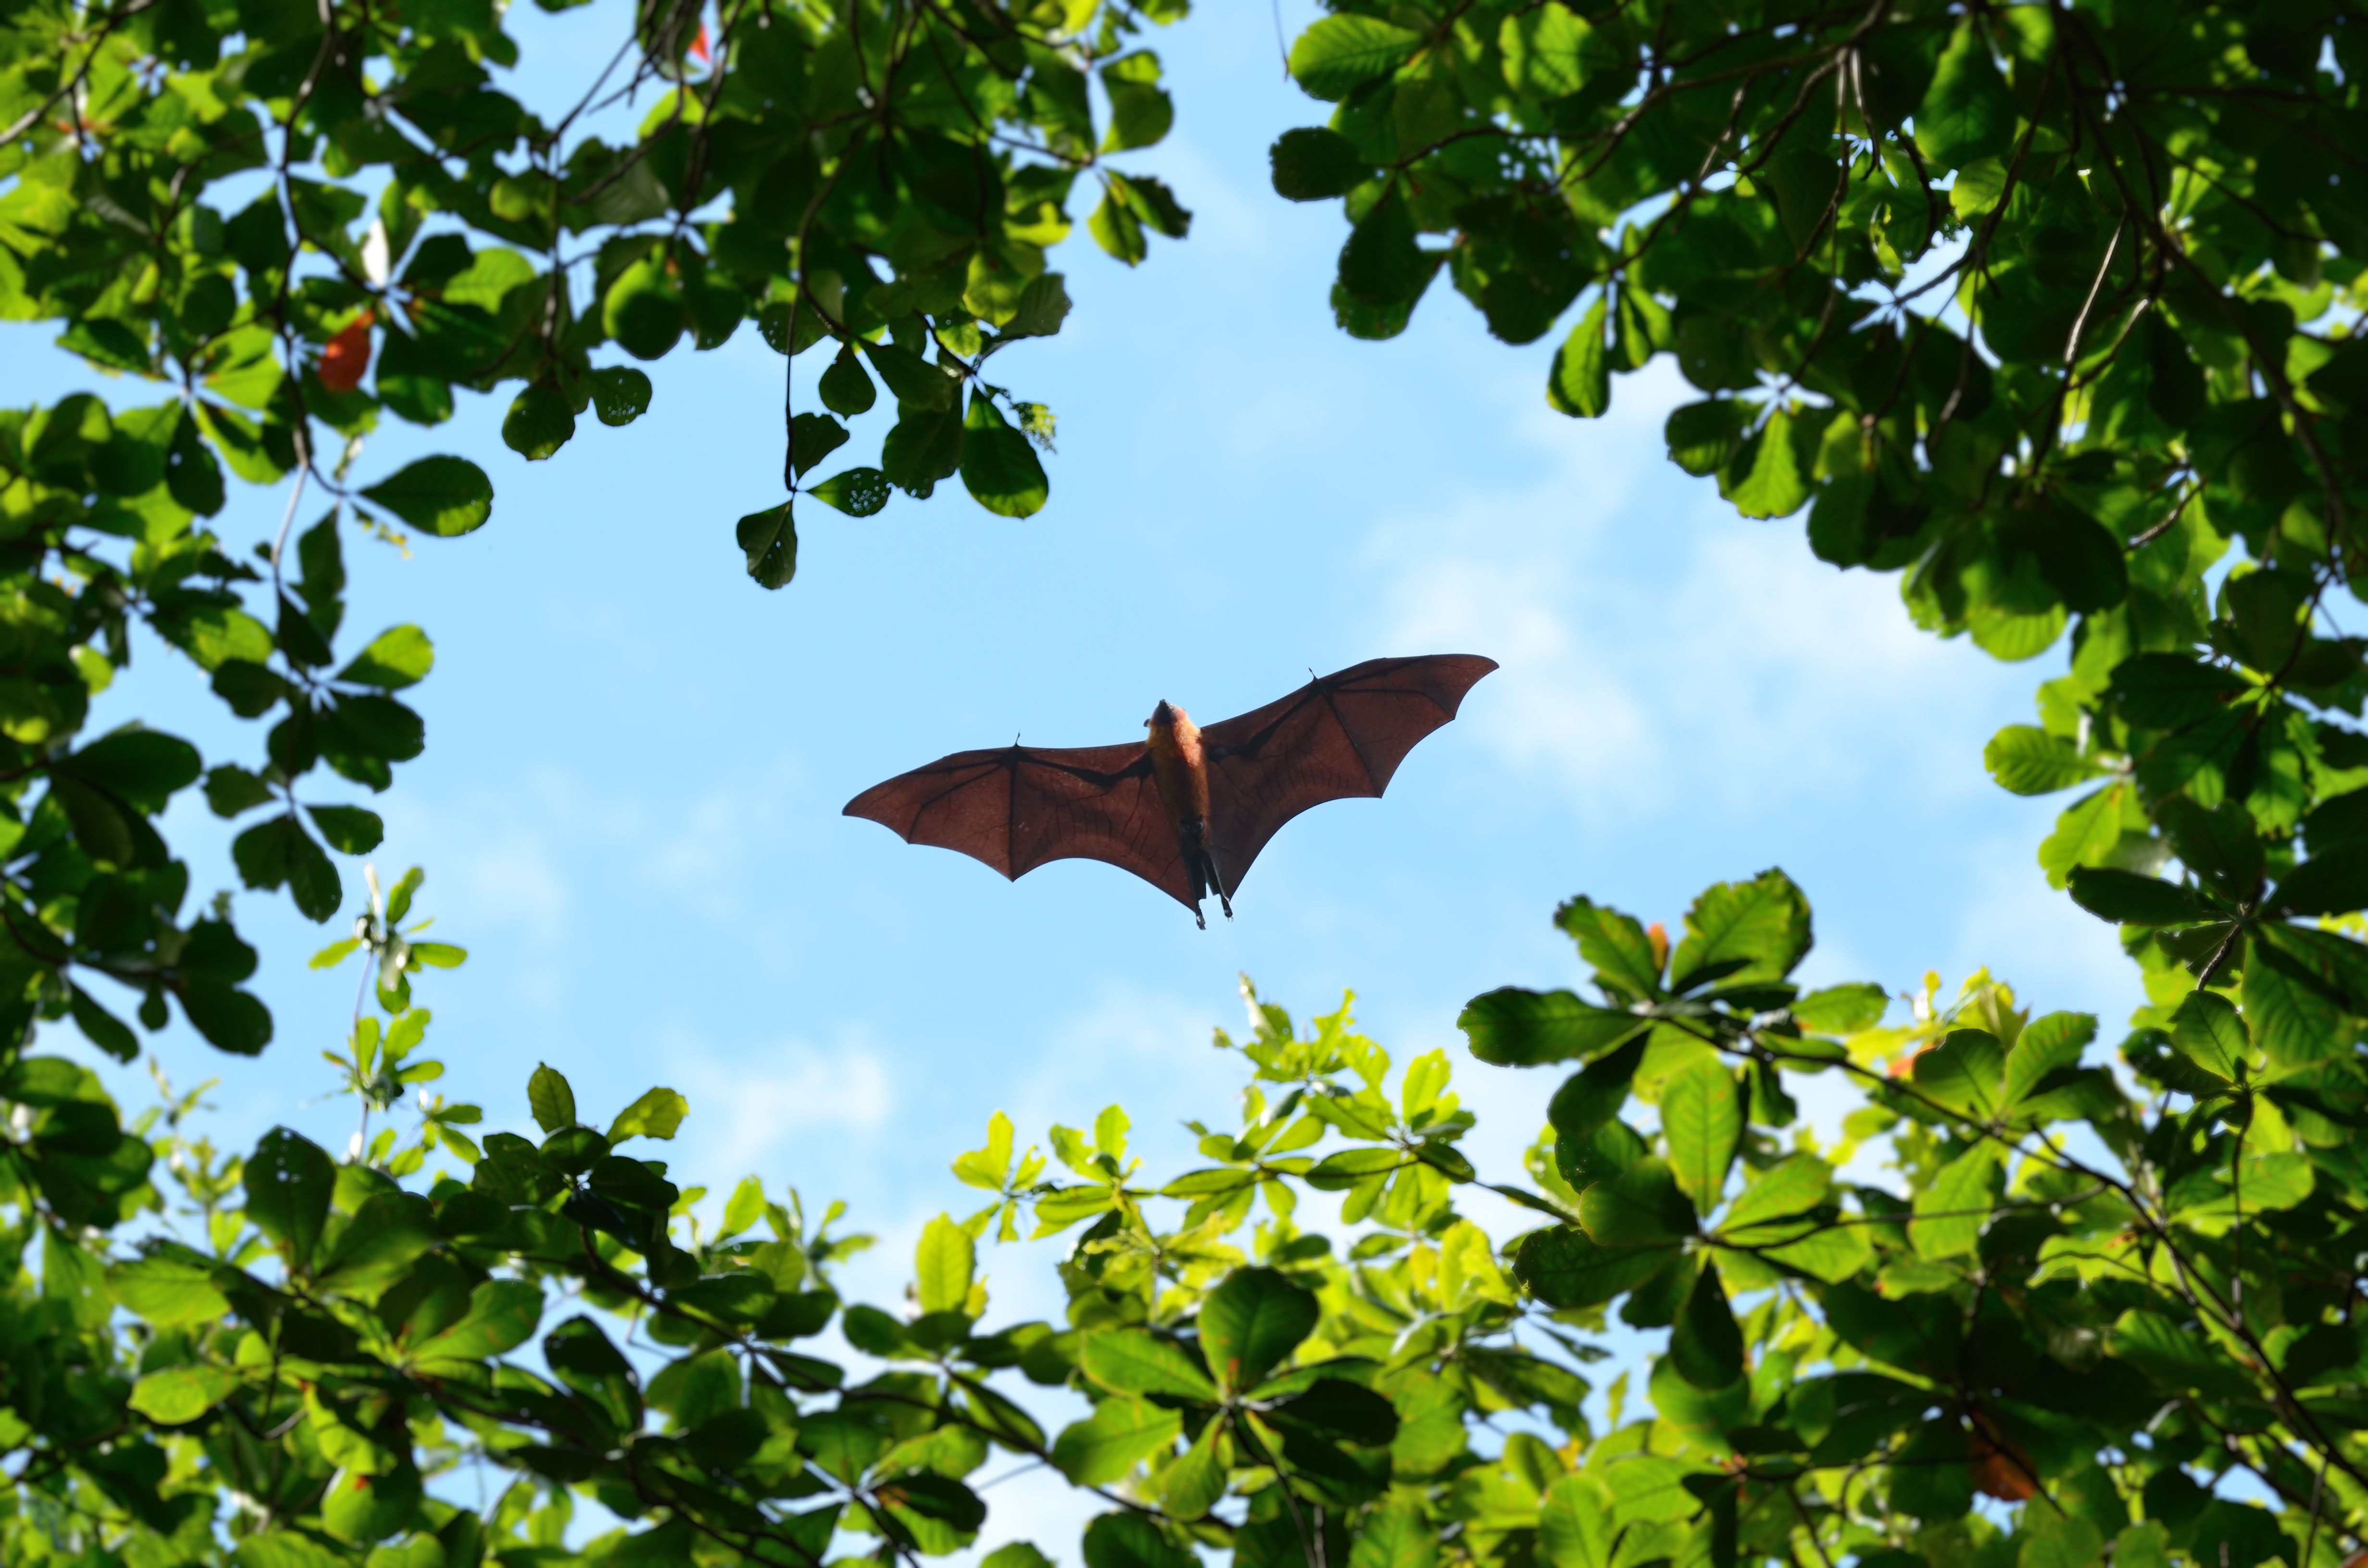 Bats can see.